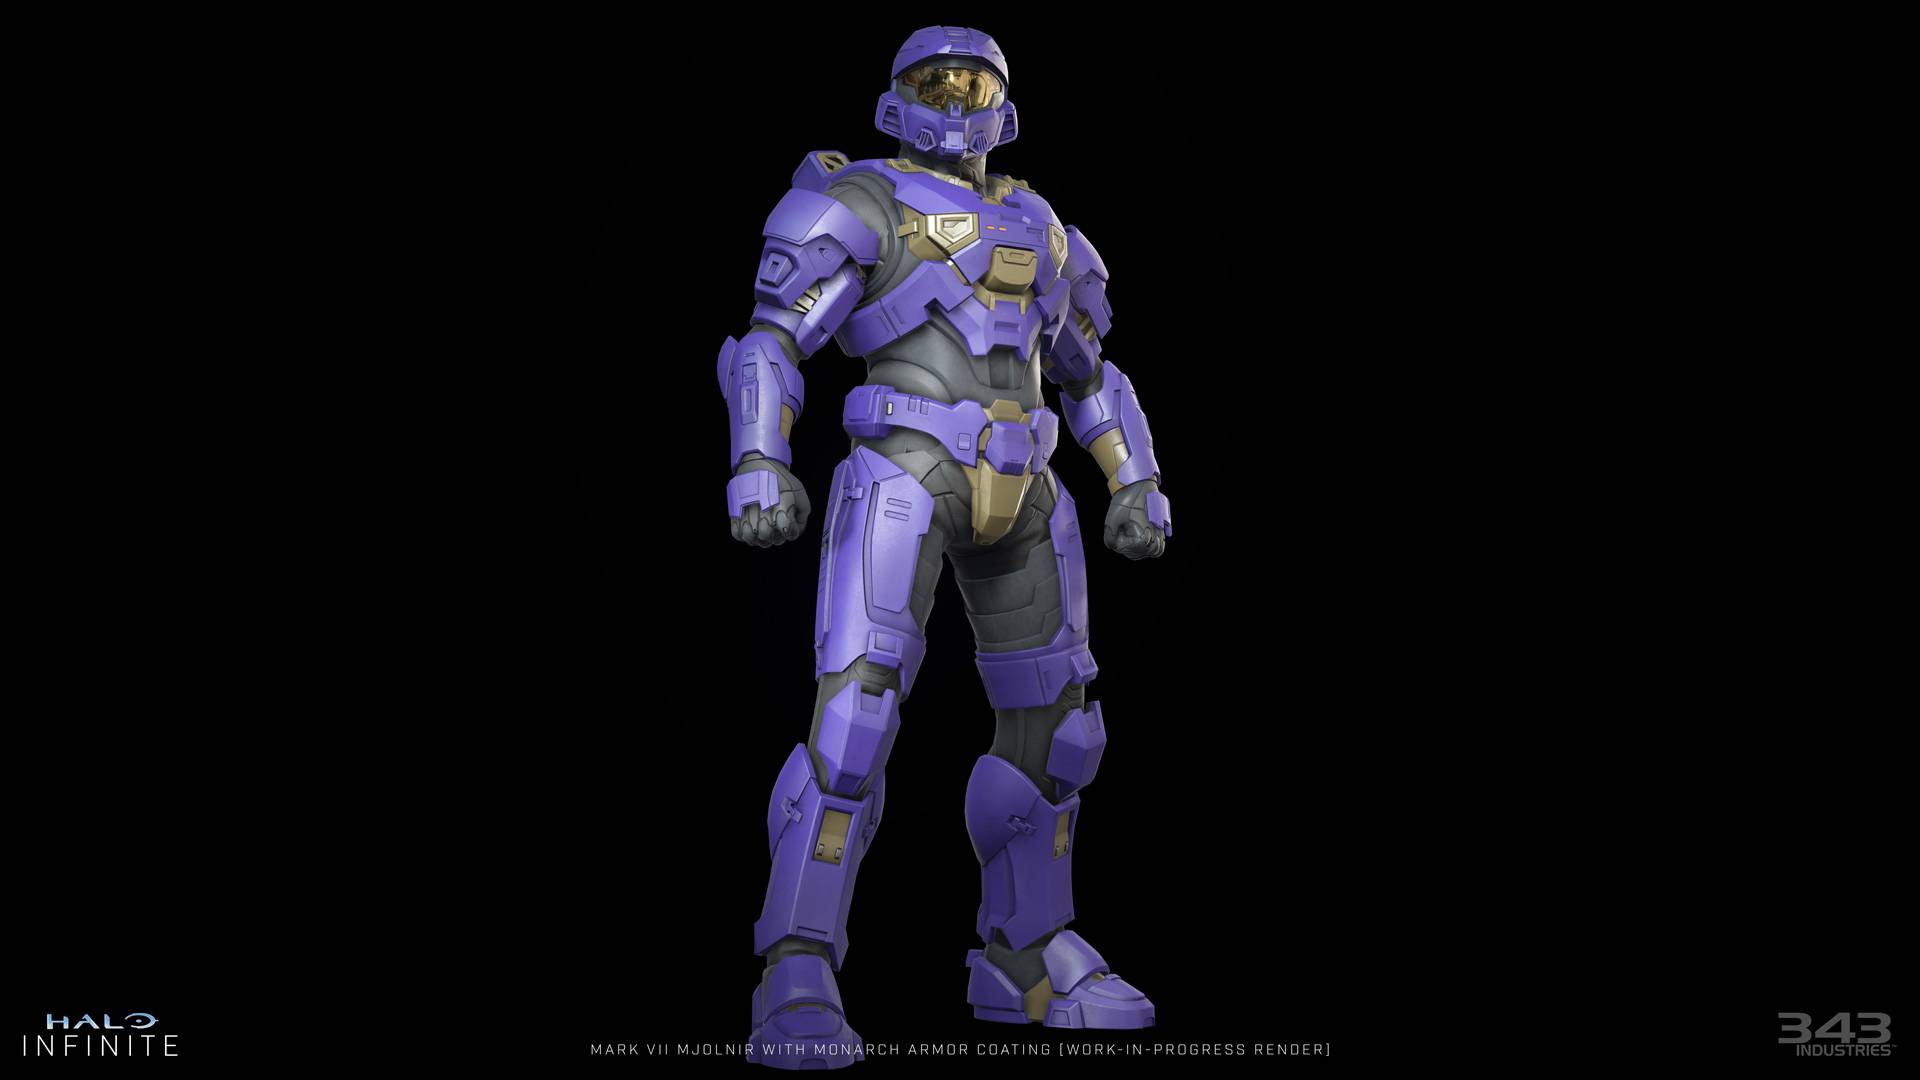 Halo Infinite armor